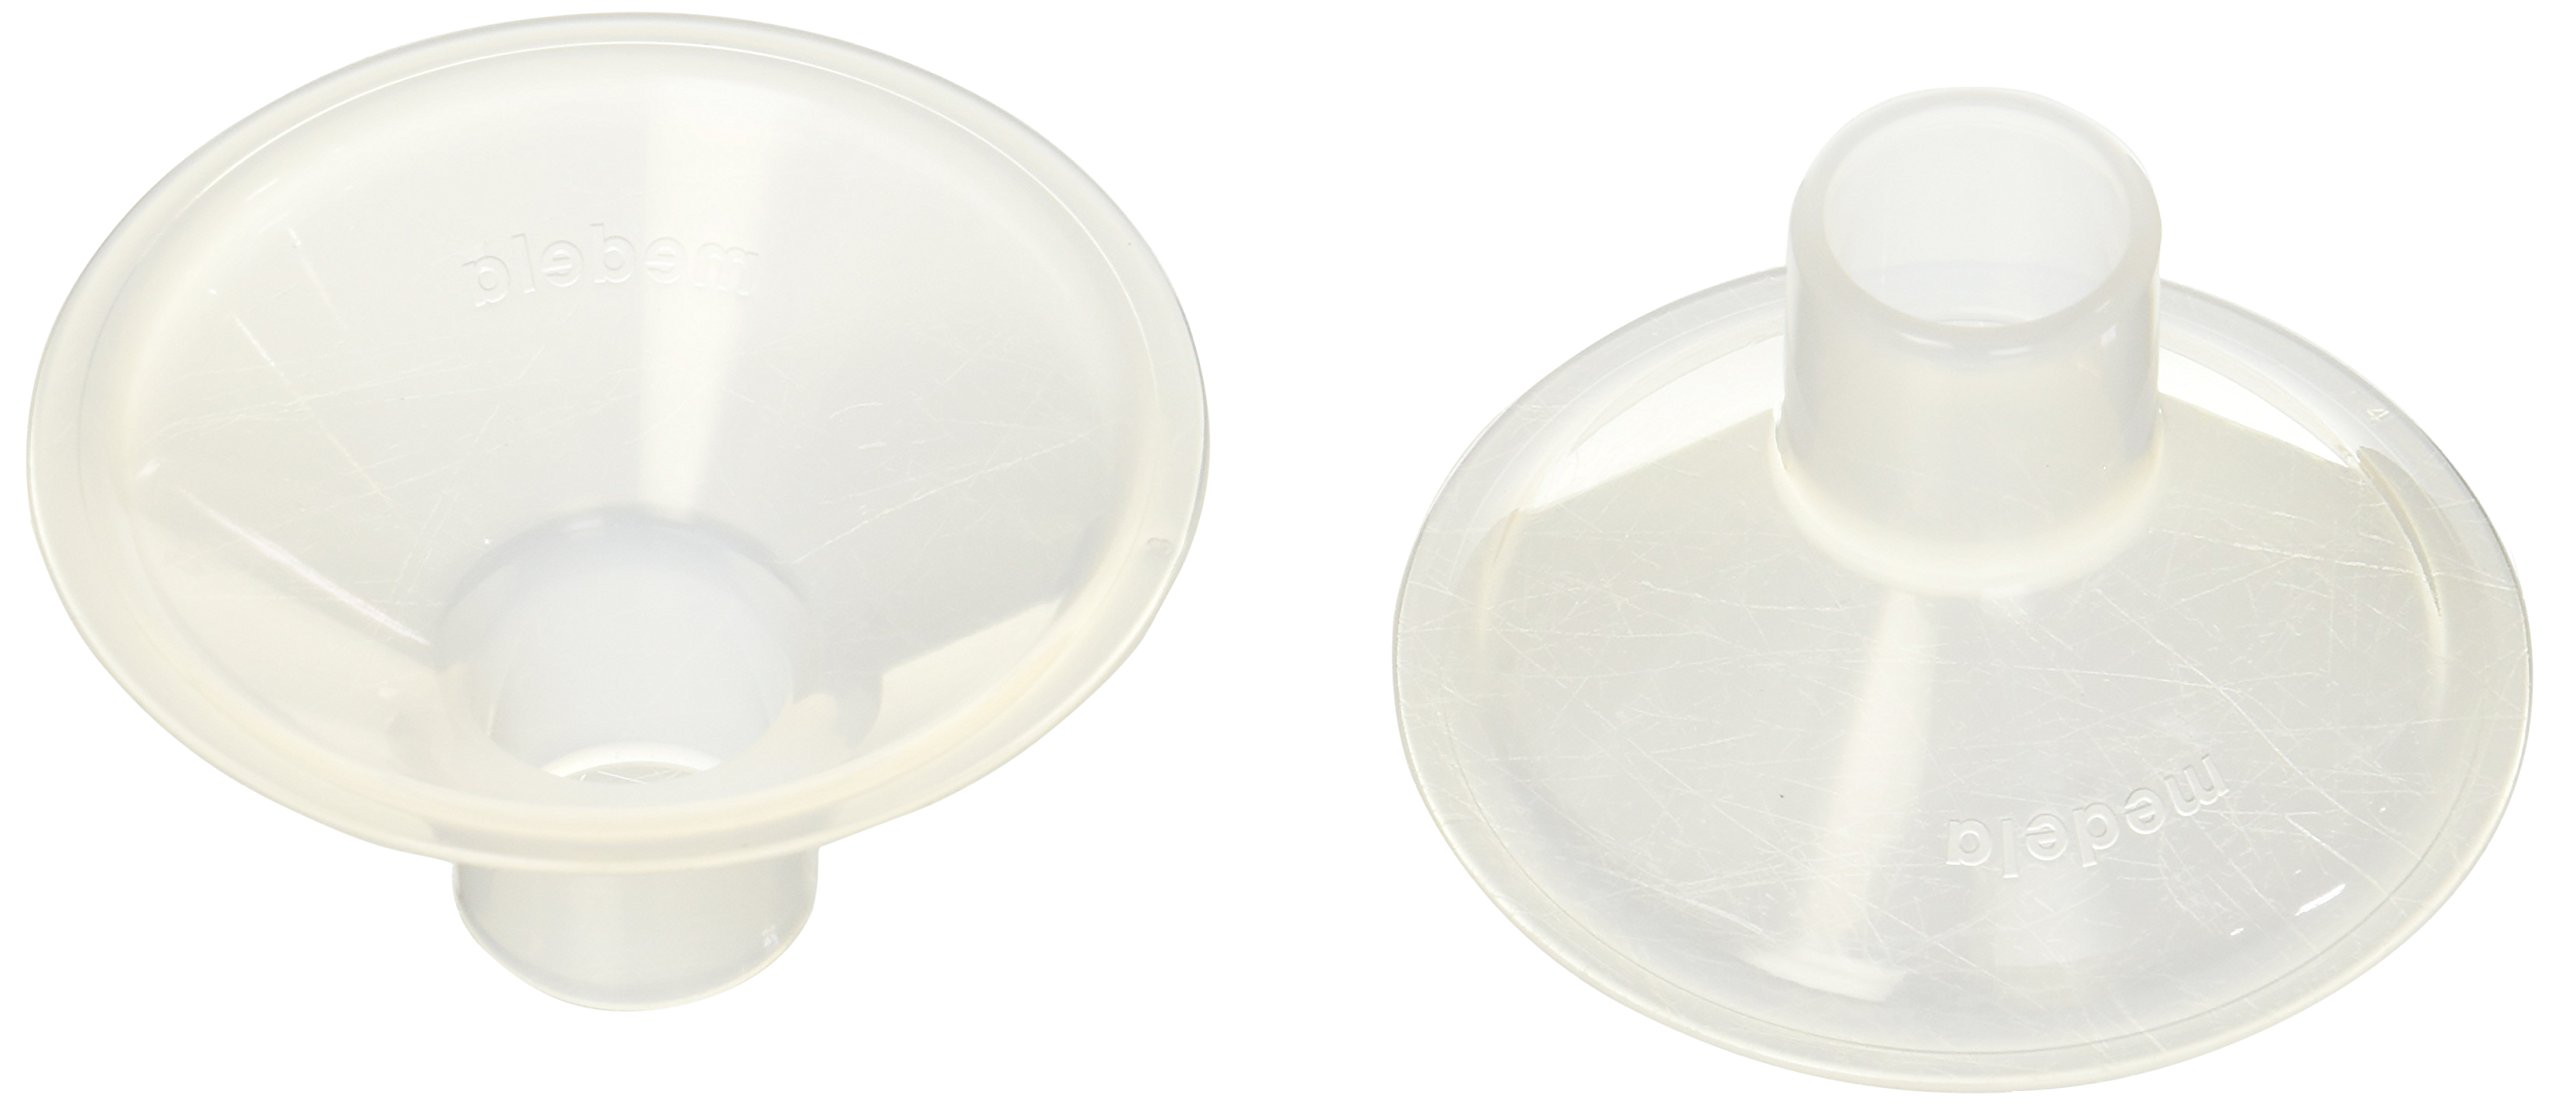 Medela PersonalFit Breastshields (2), Size: Small (21mm) in Retail Packaging (Factory Sealed) #87072 by Medela